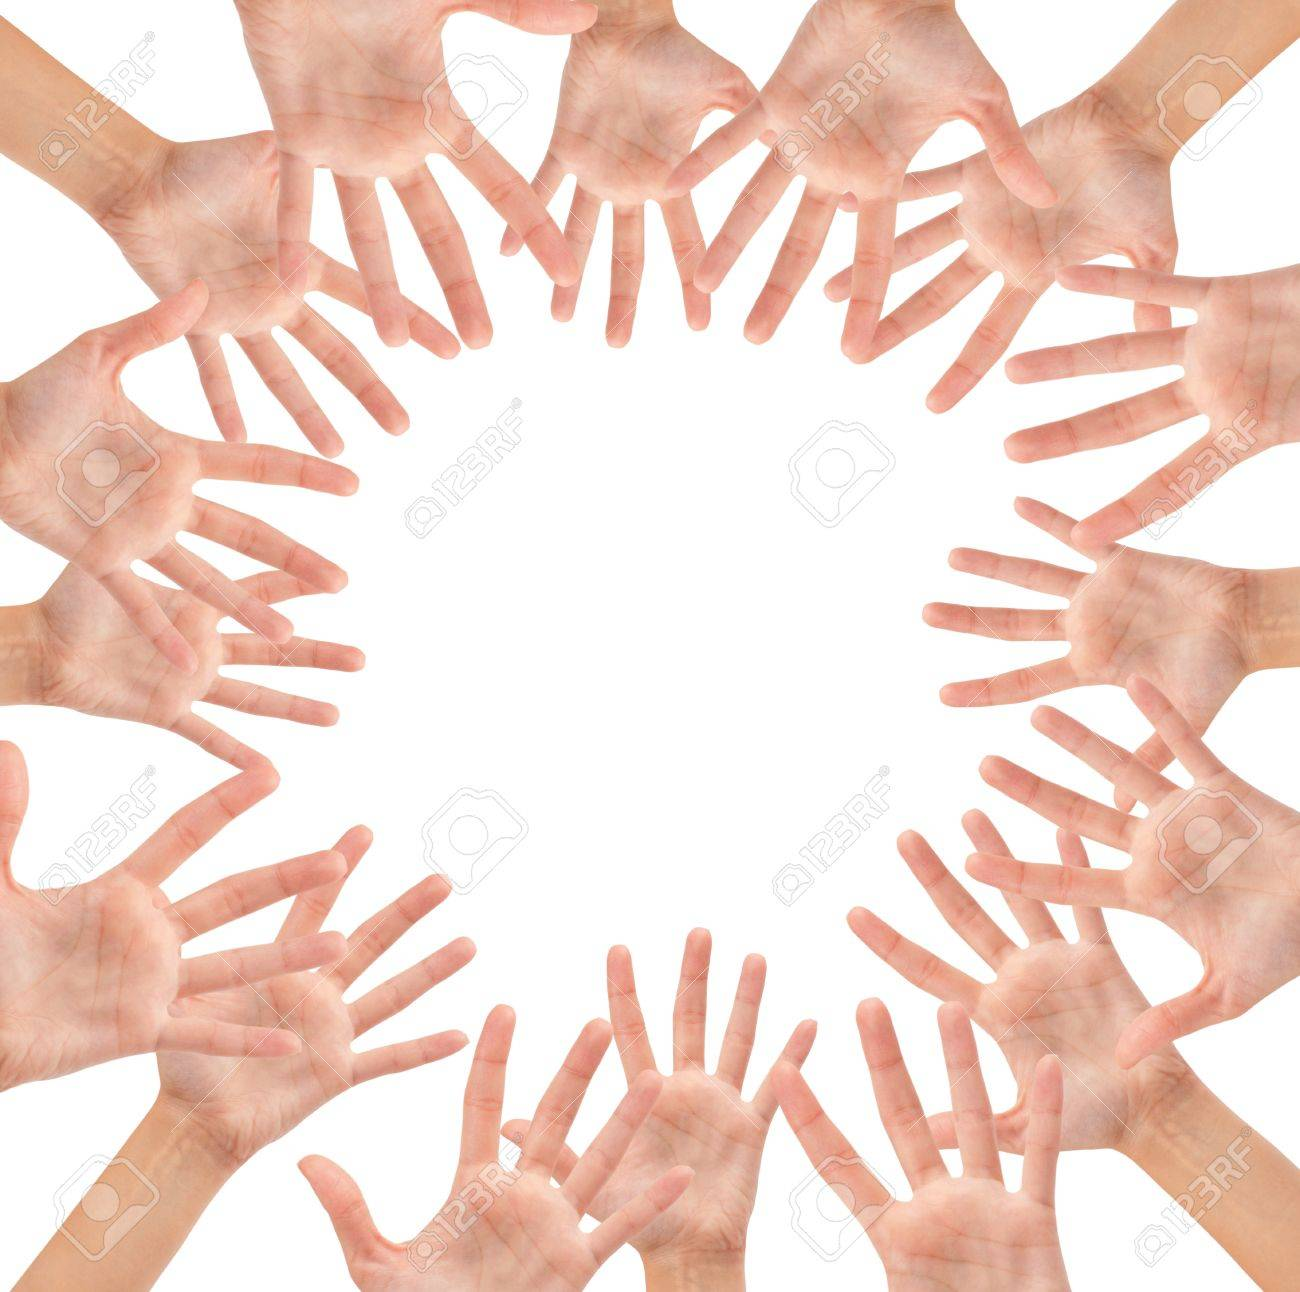 Circle made of hands isolated on white background Stock Photo - 16473723